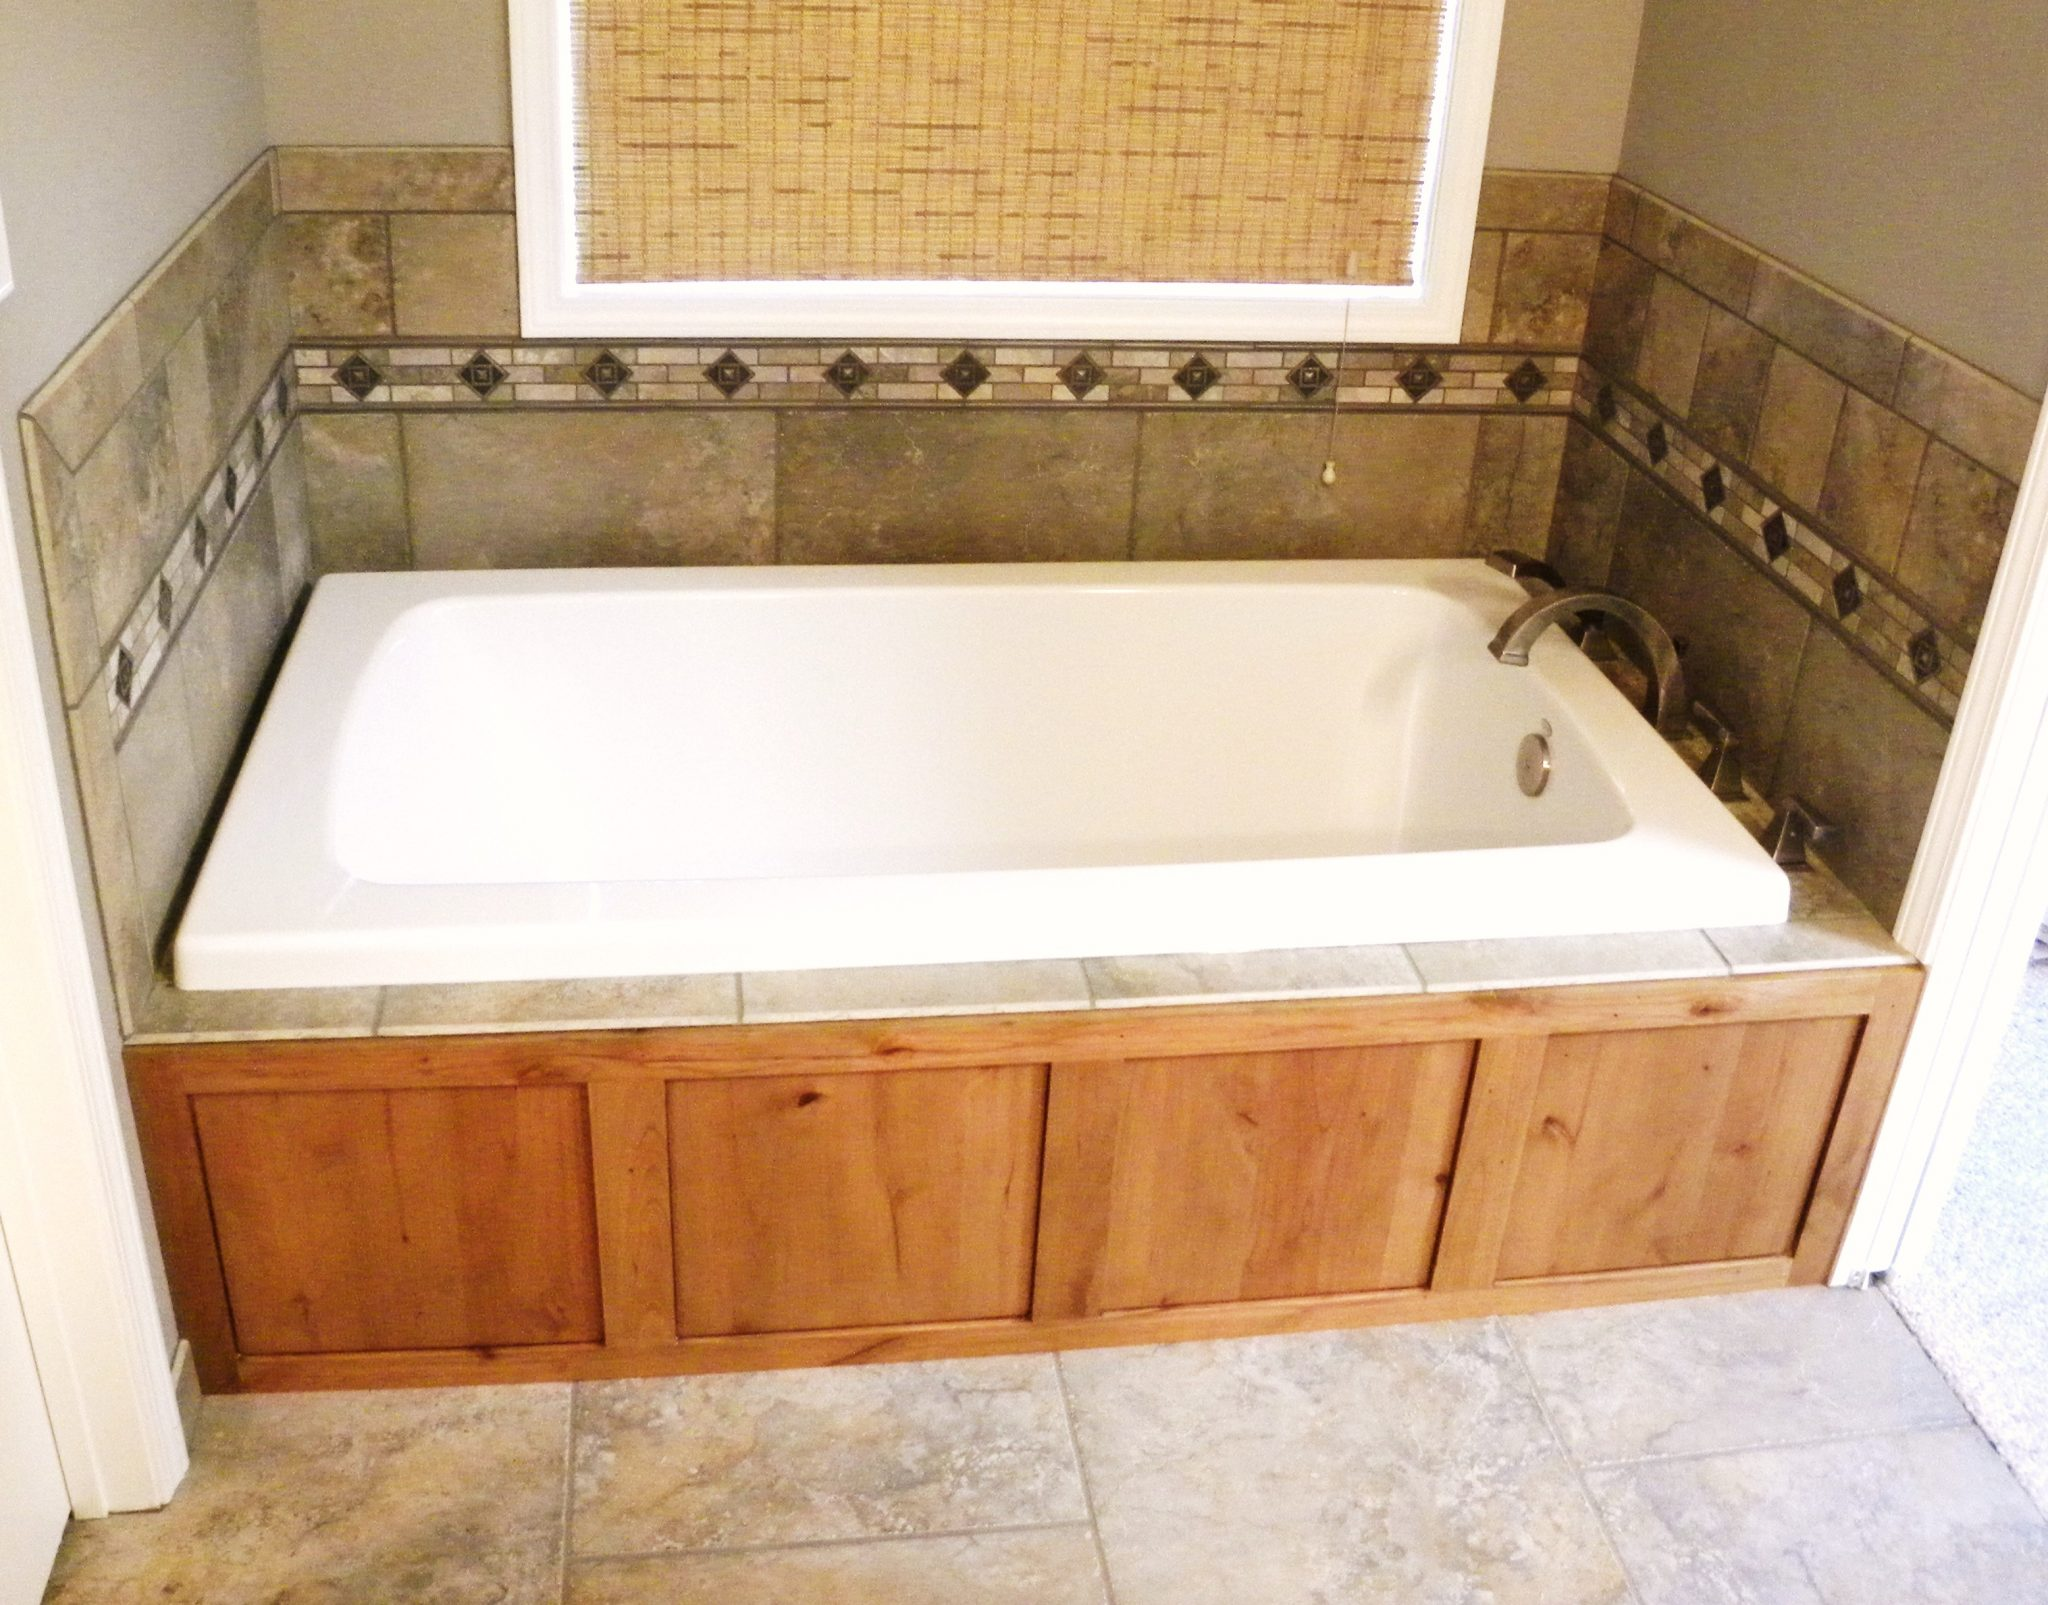 Interior shot of a newly remodeled custom bathtub with wood lining